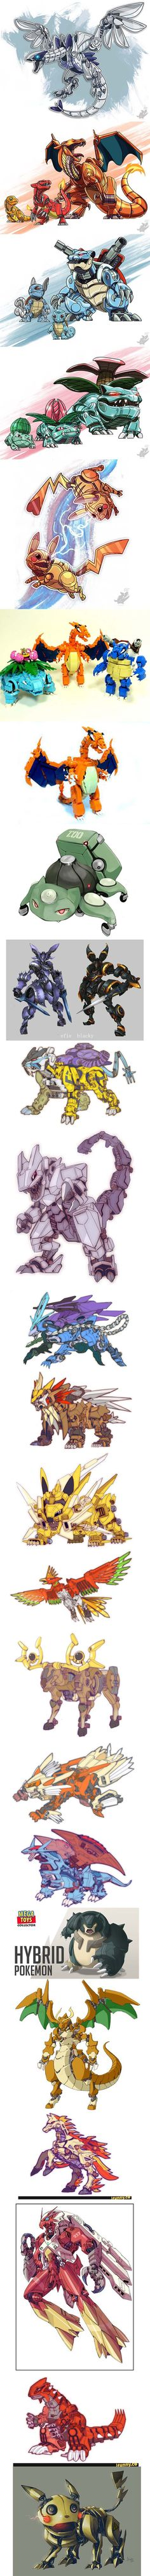 Pokemon as mecha... Mechamon?